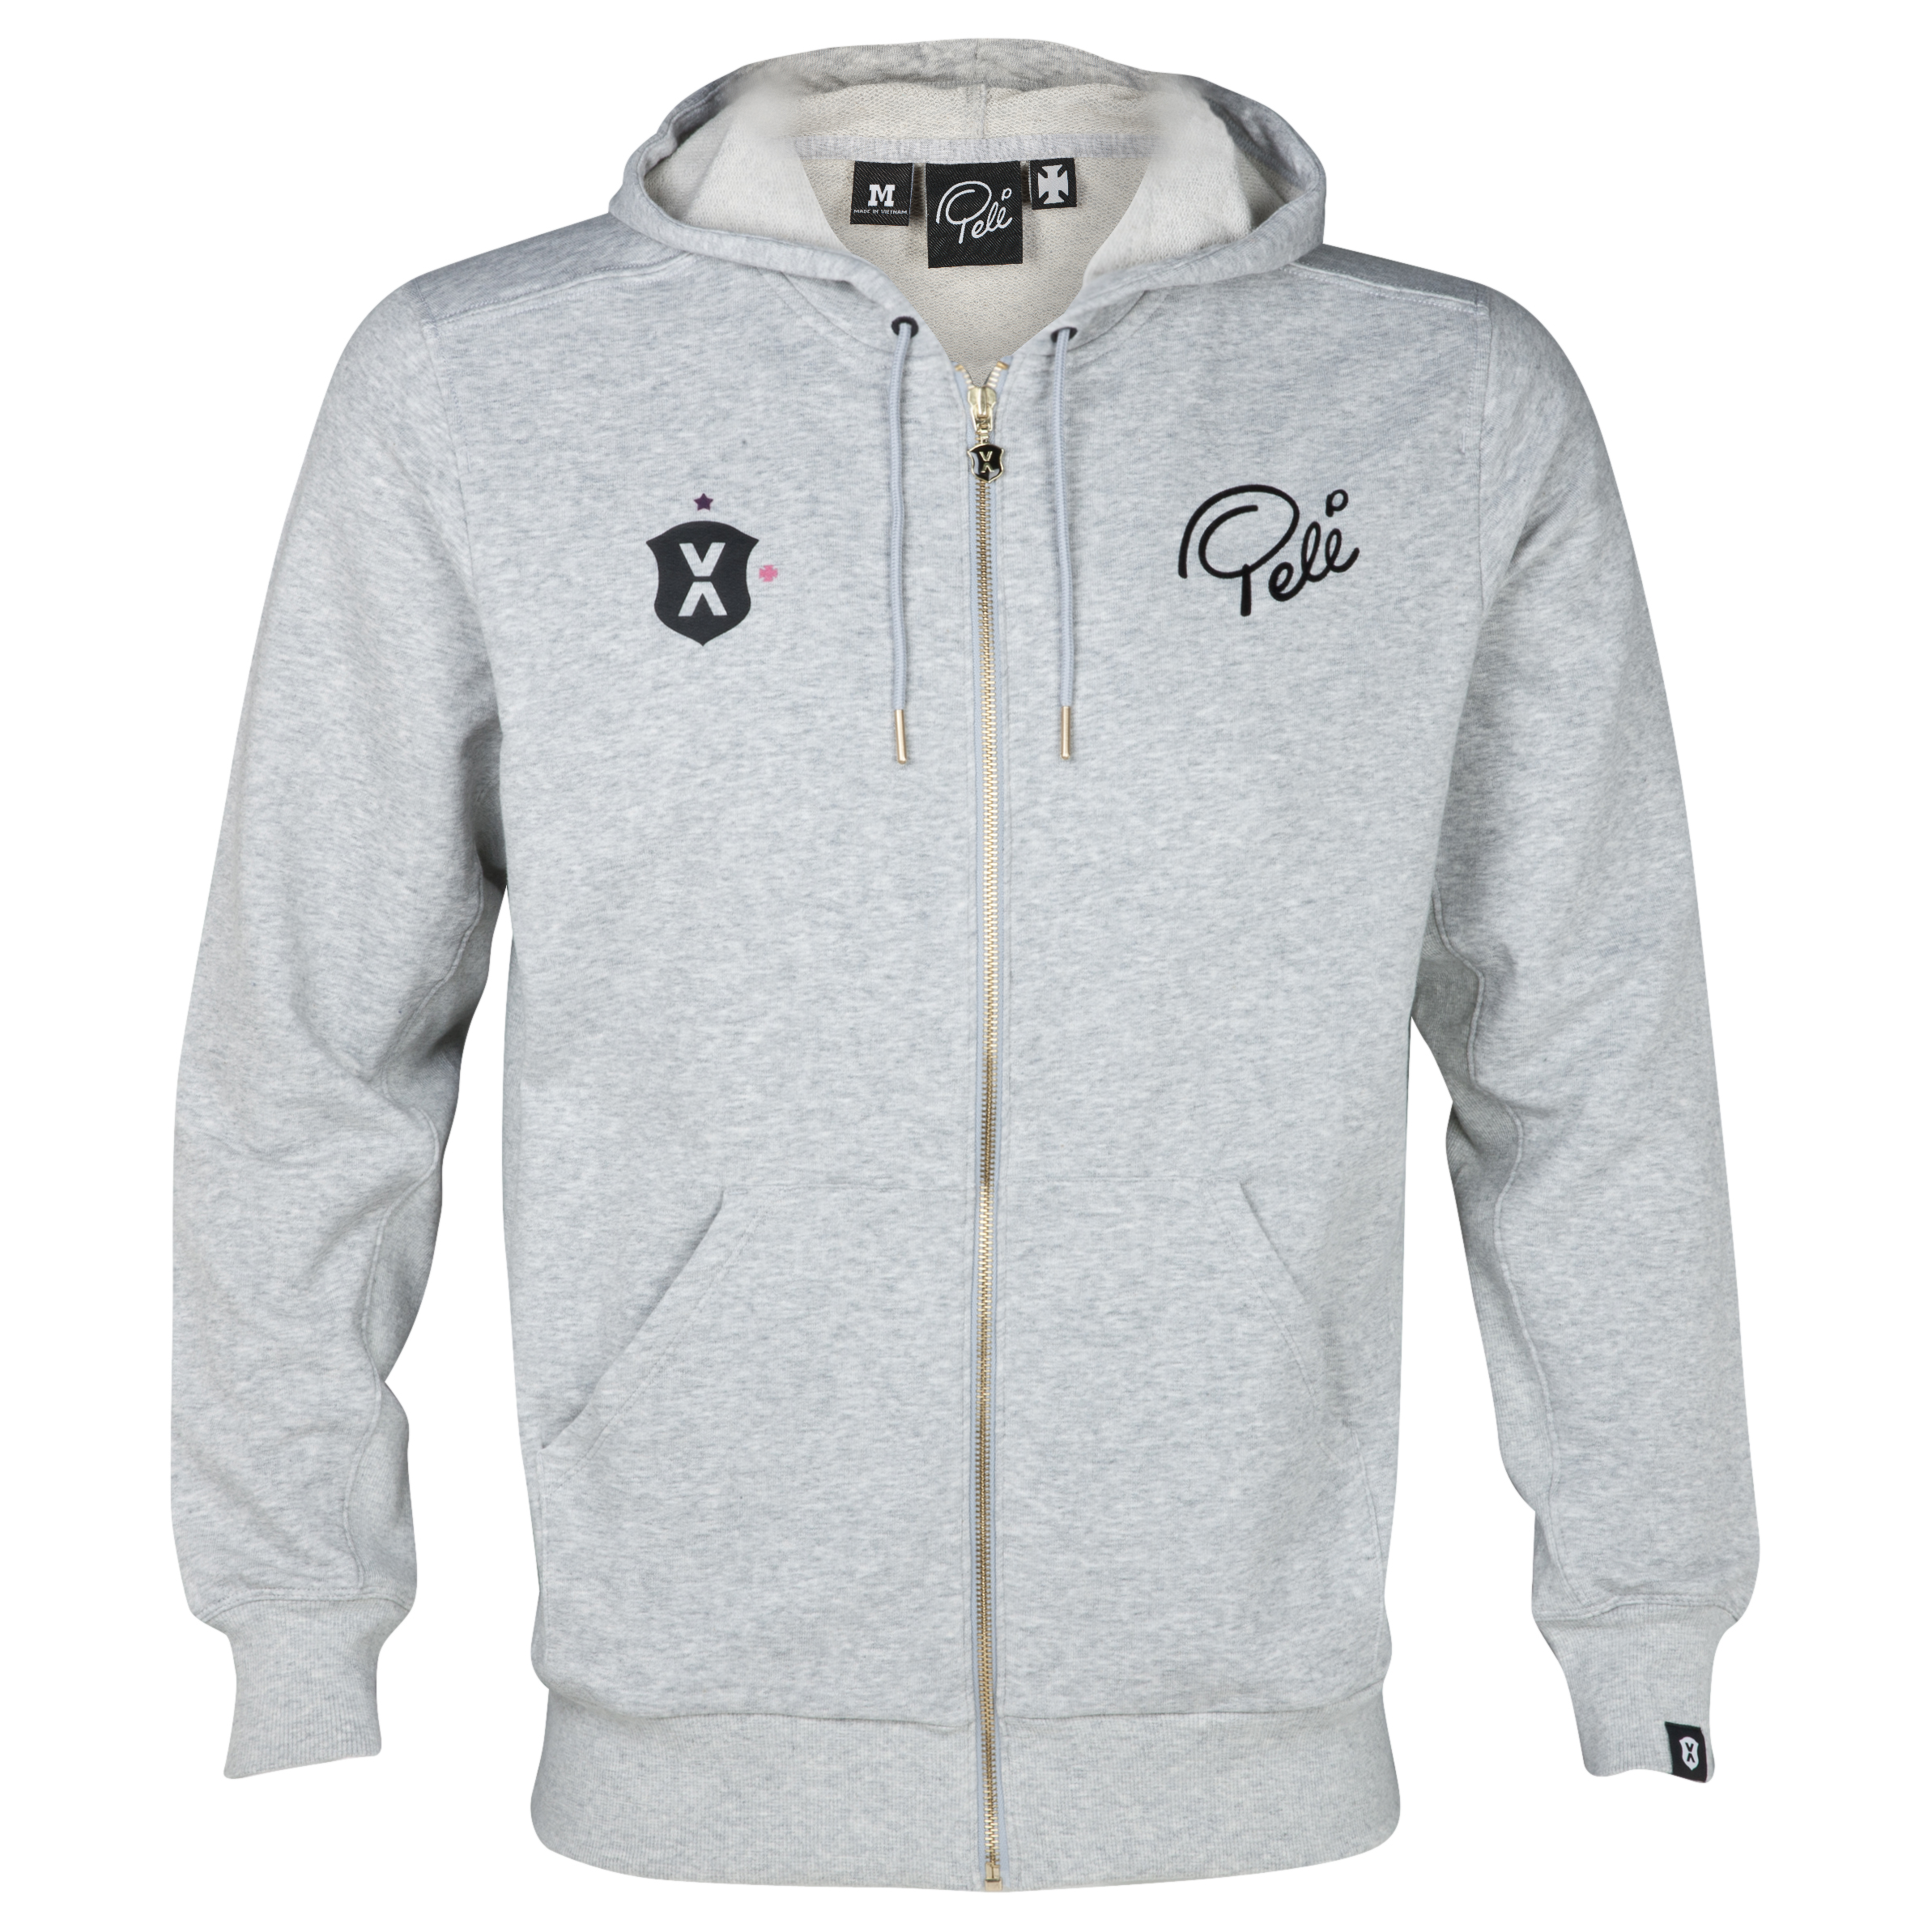 Pele Sports Zip Hoody - Grey Heather